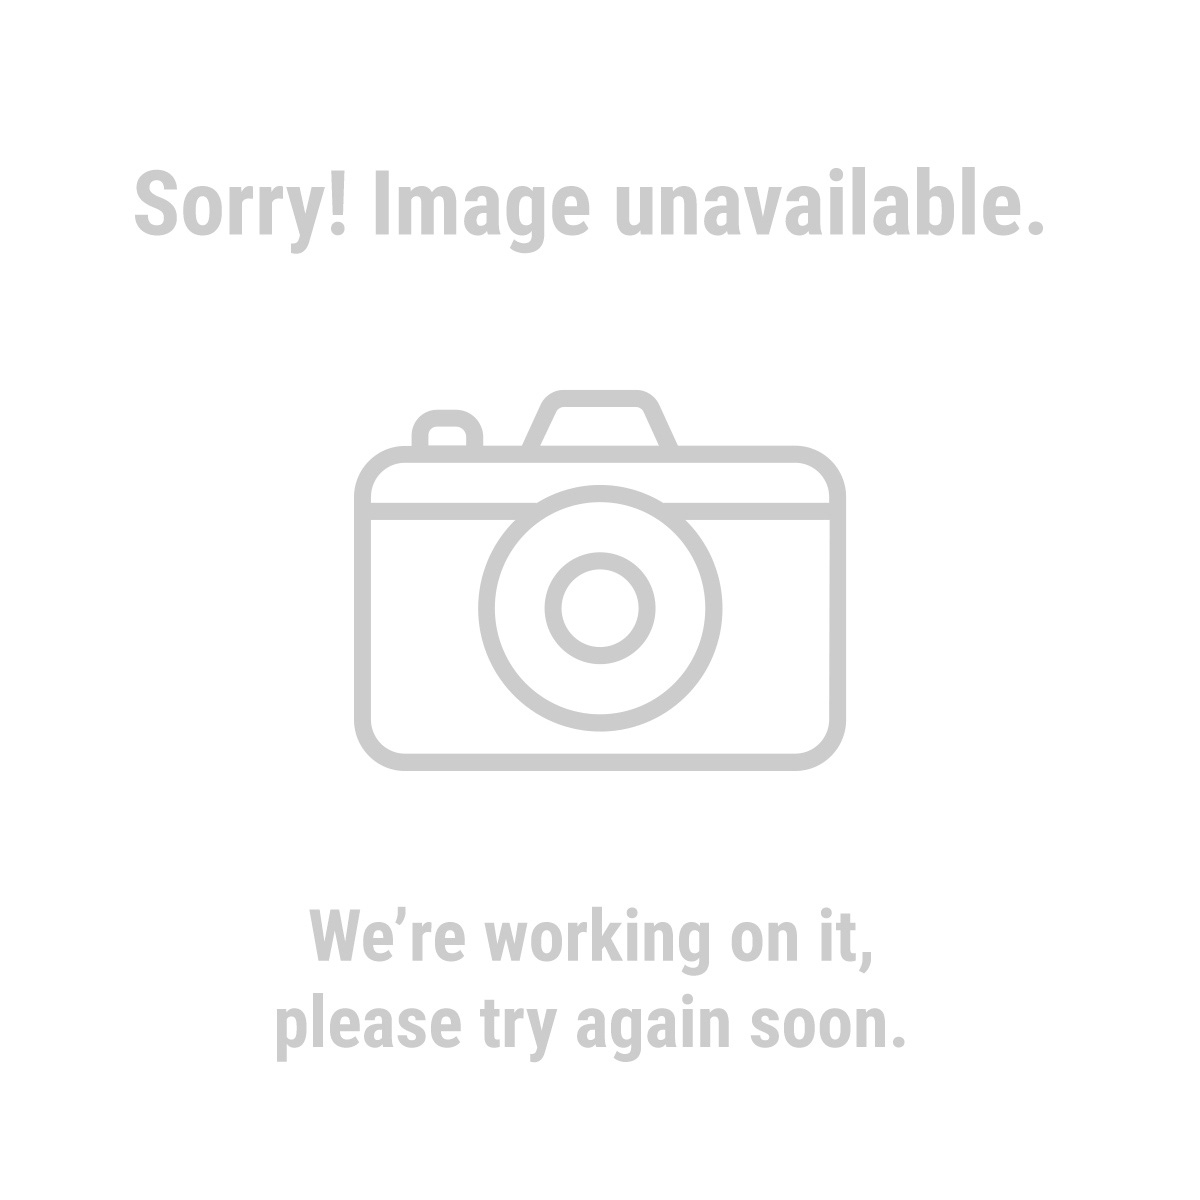 "HFT 47836 600 Ft. x 1/4"" Polypropylene Rope"